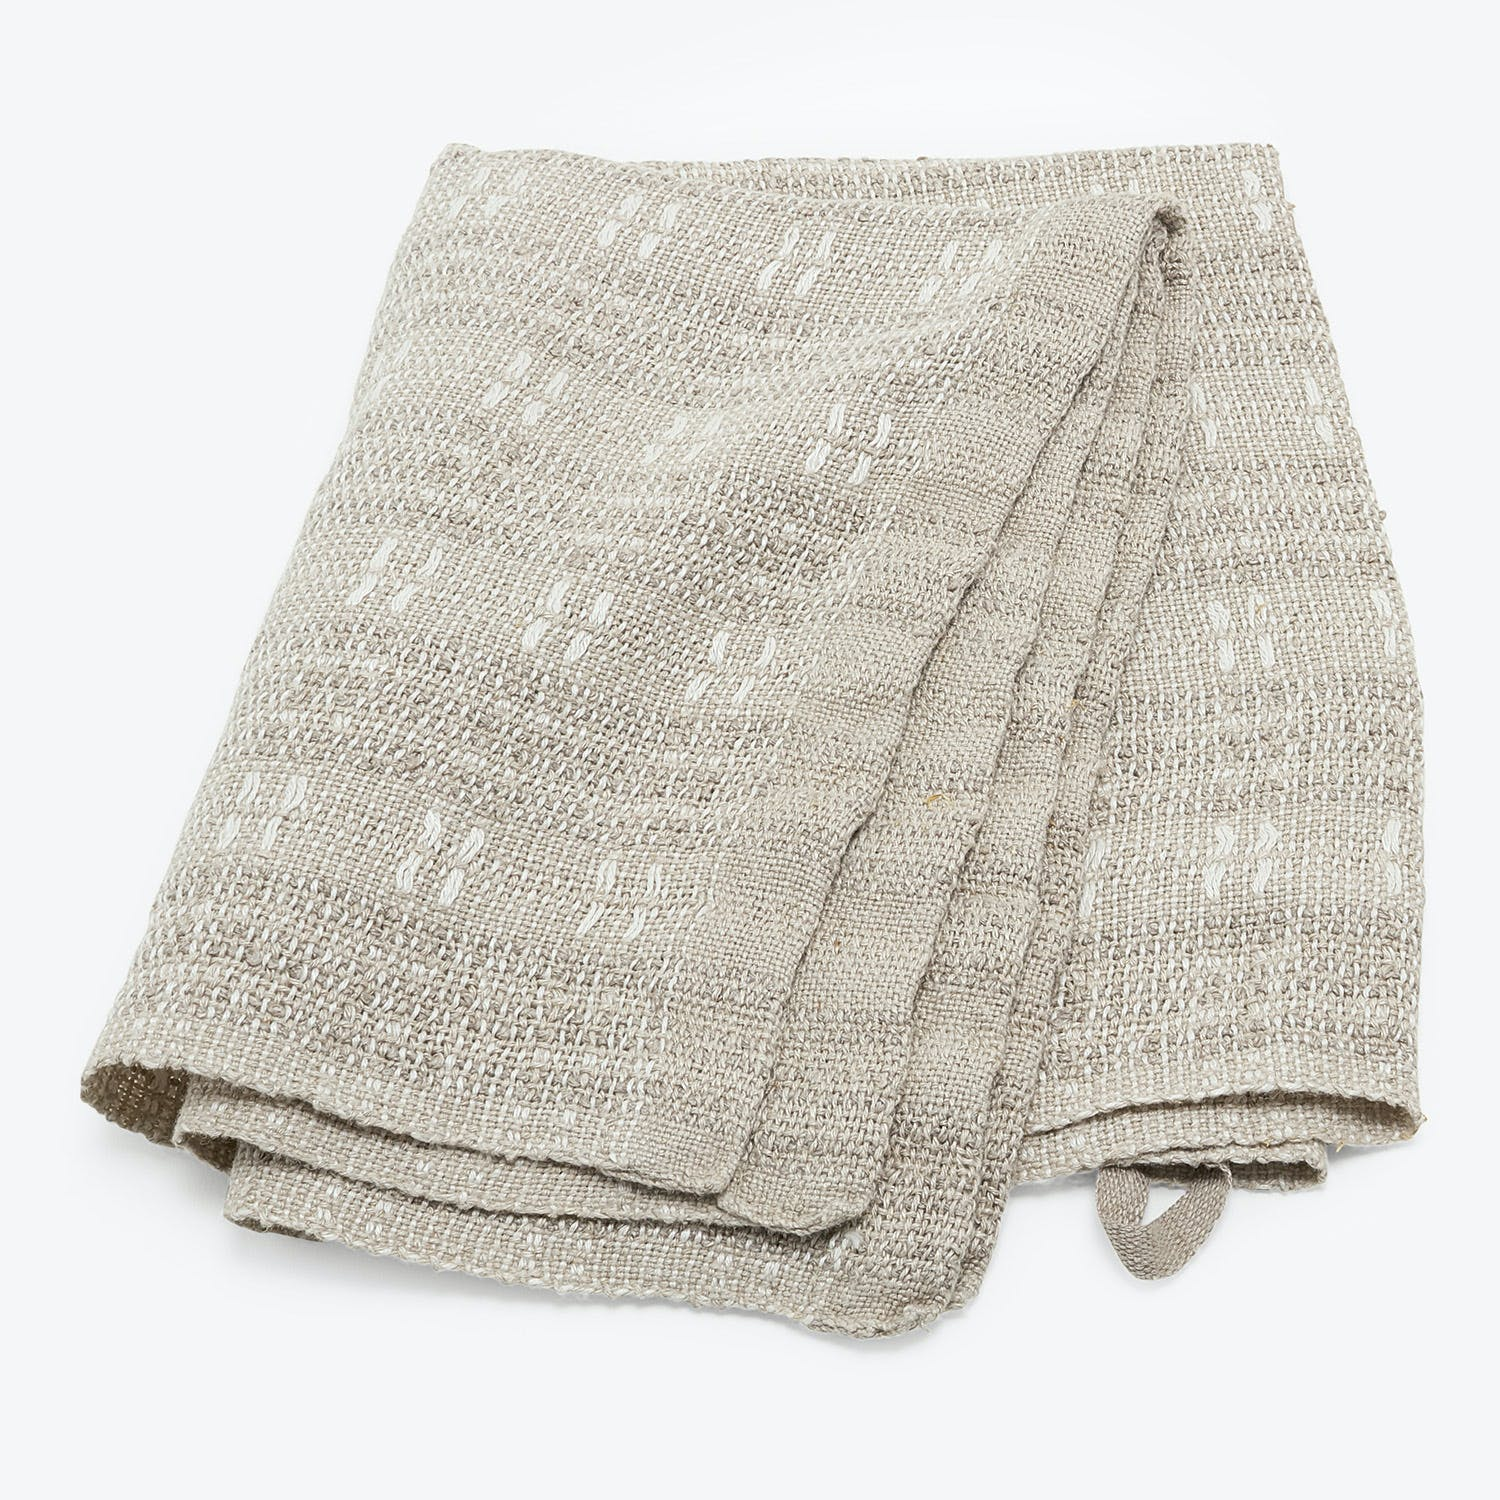 Product Image - Lukne Hand Towel Sand